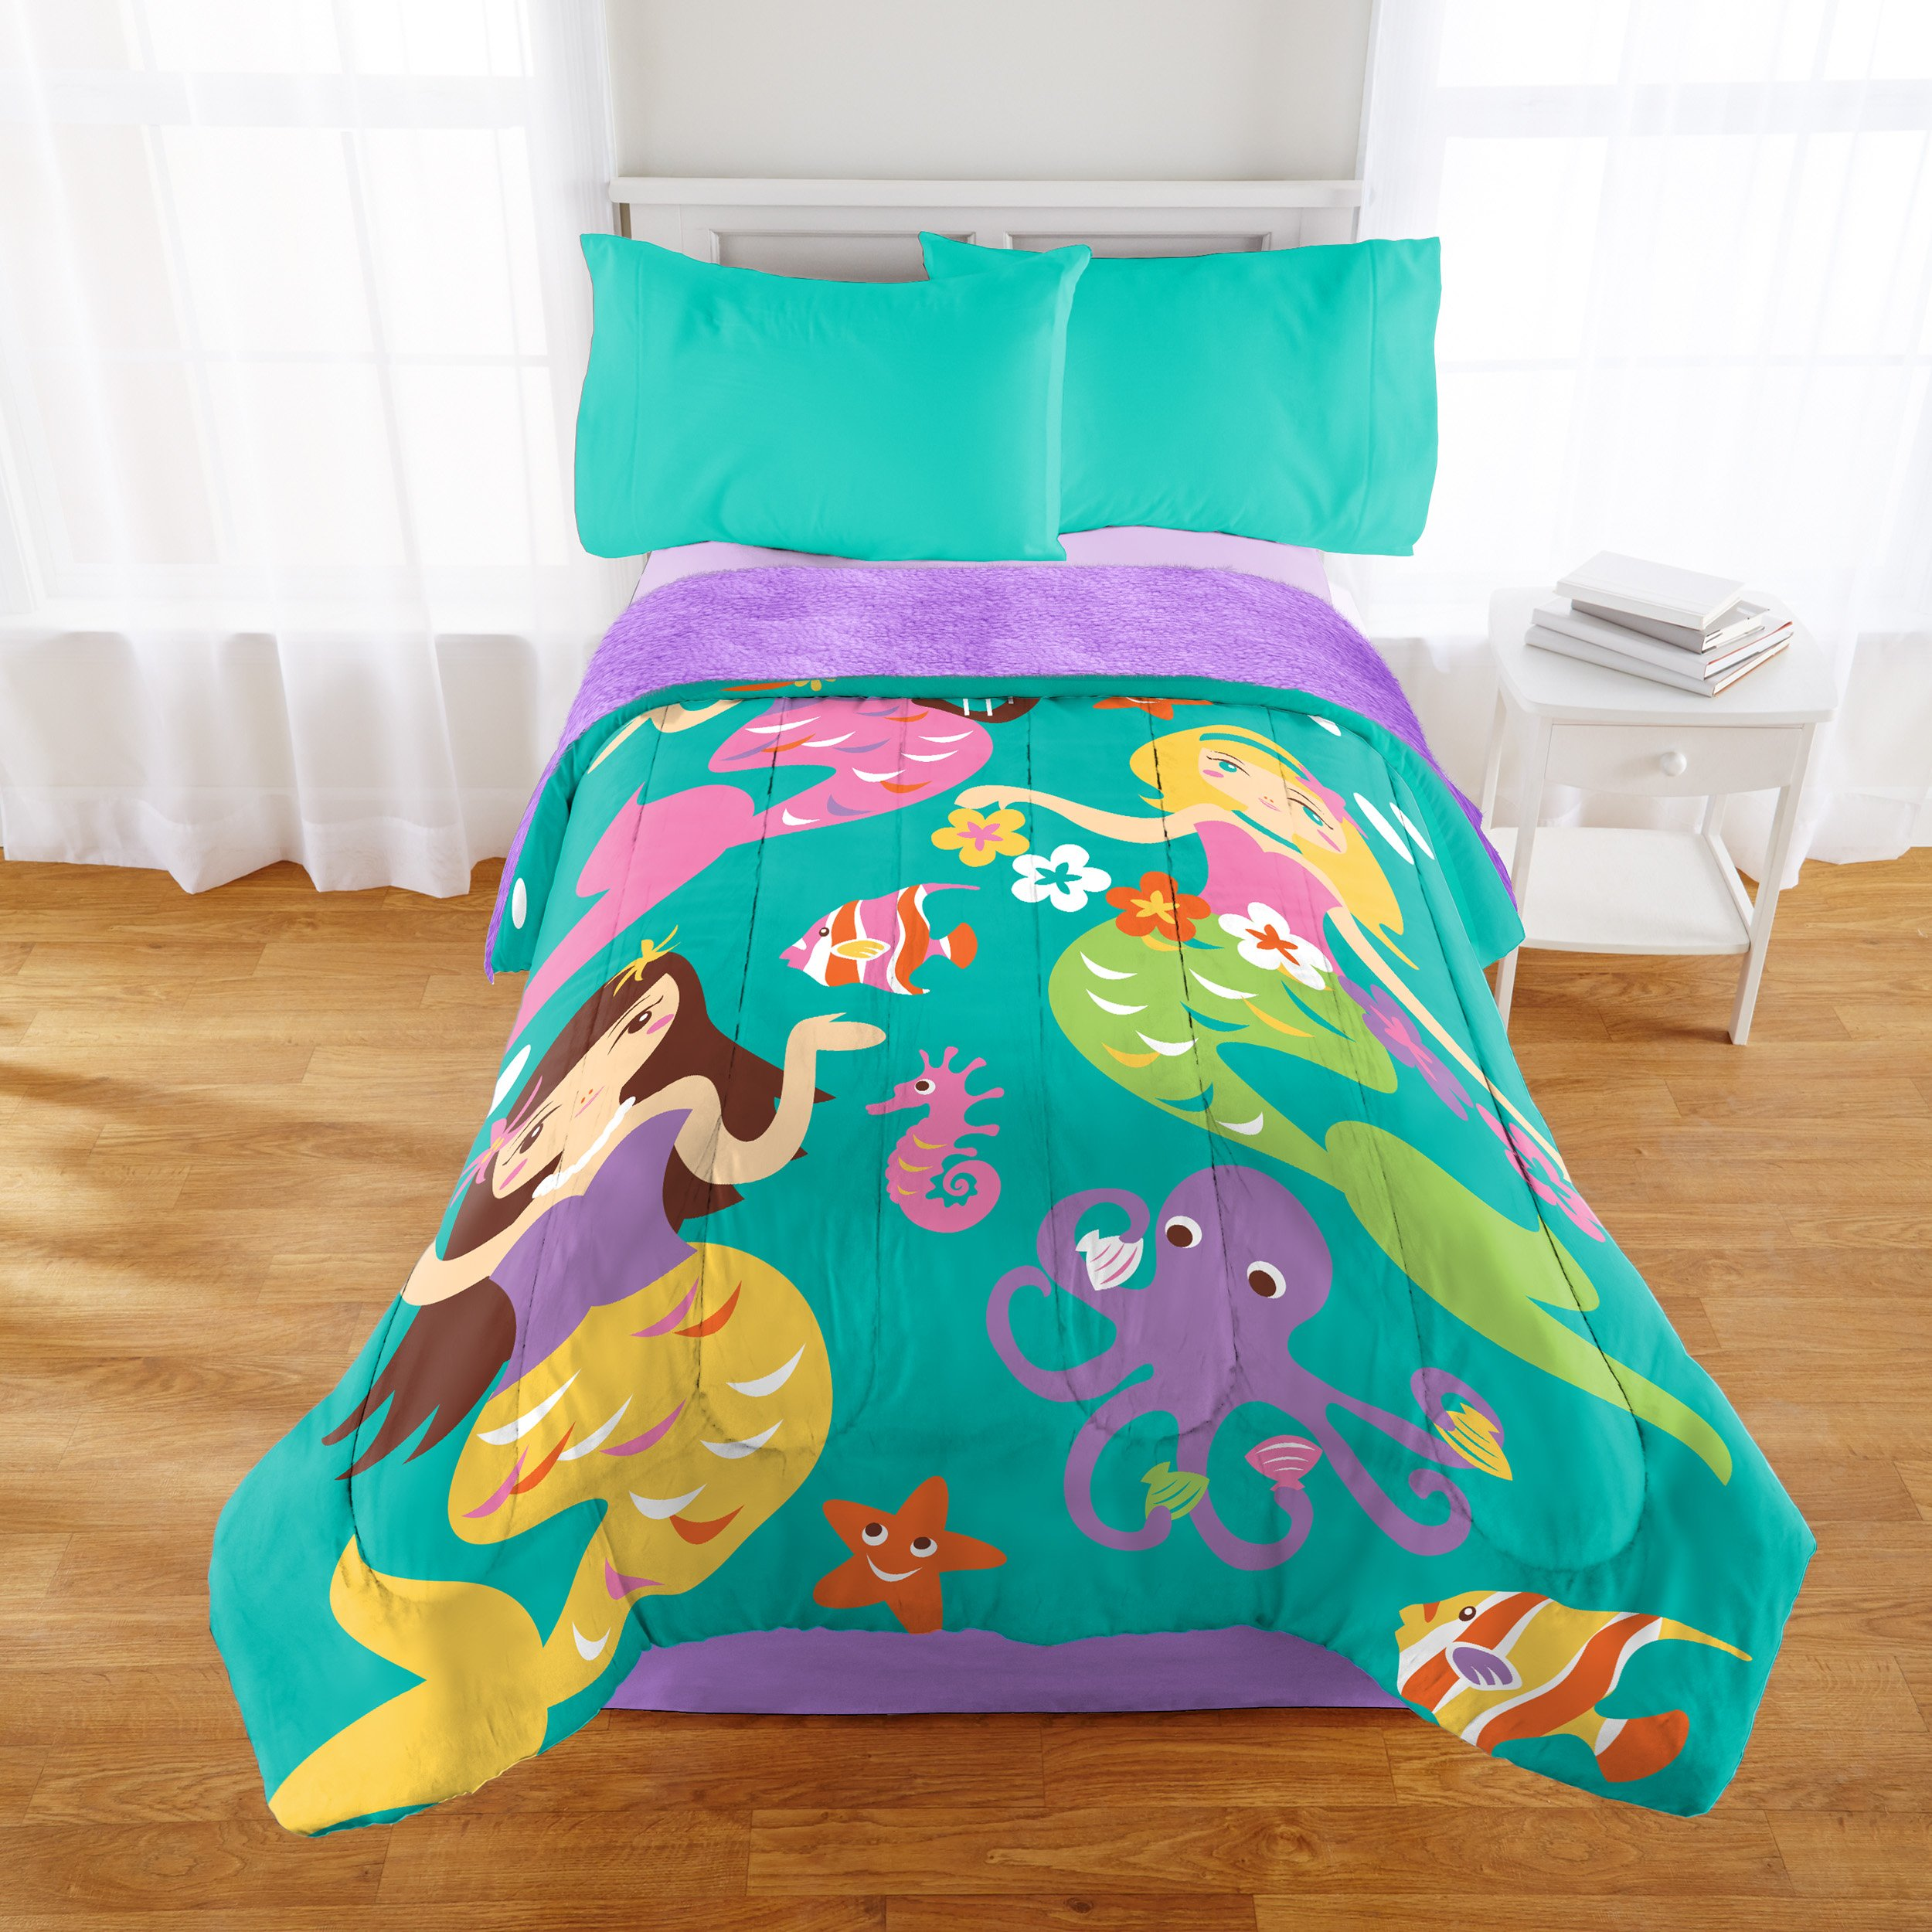 Ocean Mermaids and Sea Friends Purple and Teal Sherpa Back Comforter Bed Spread